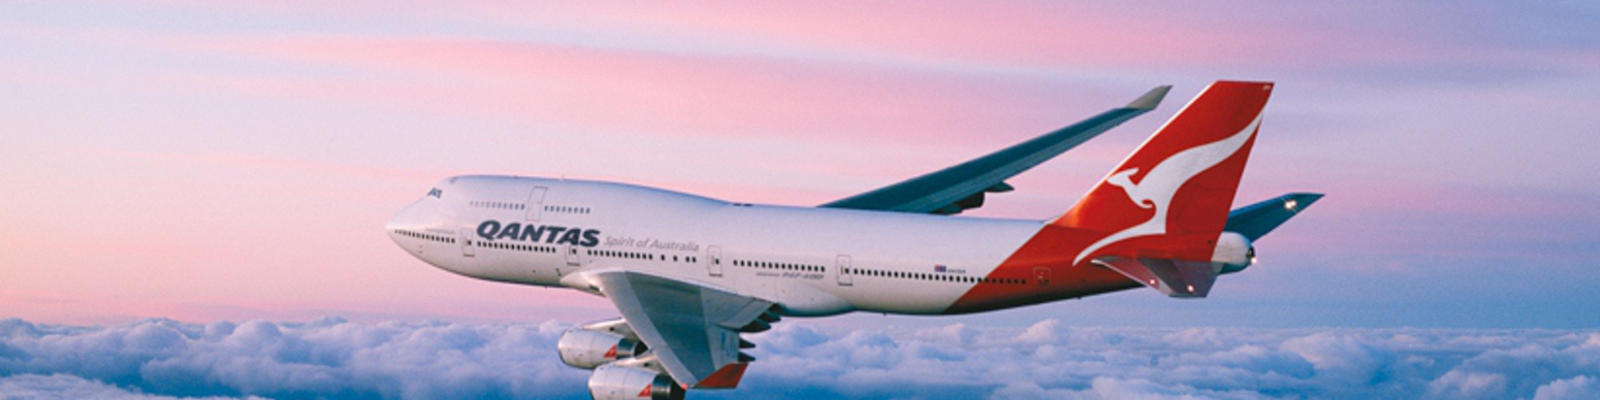 Qantas airplane flying over the purple and blue horizon